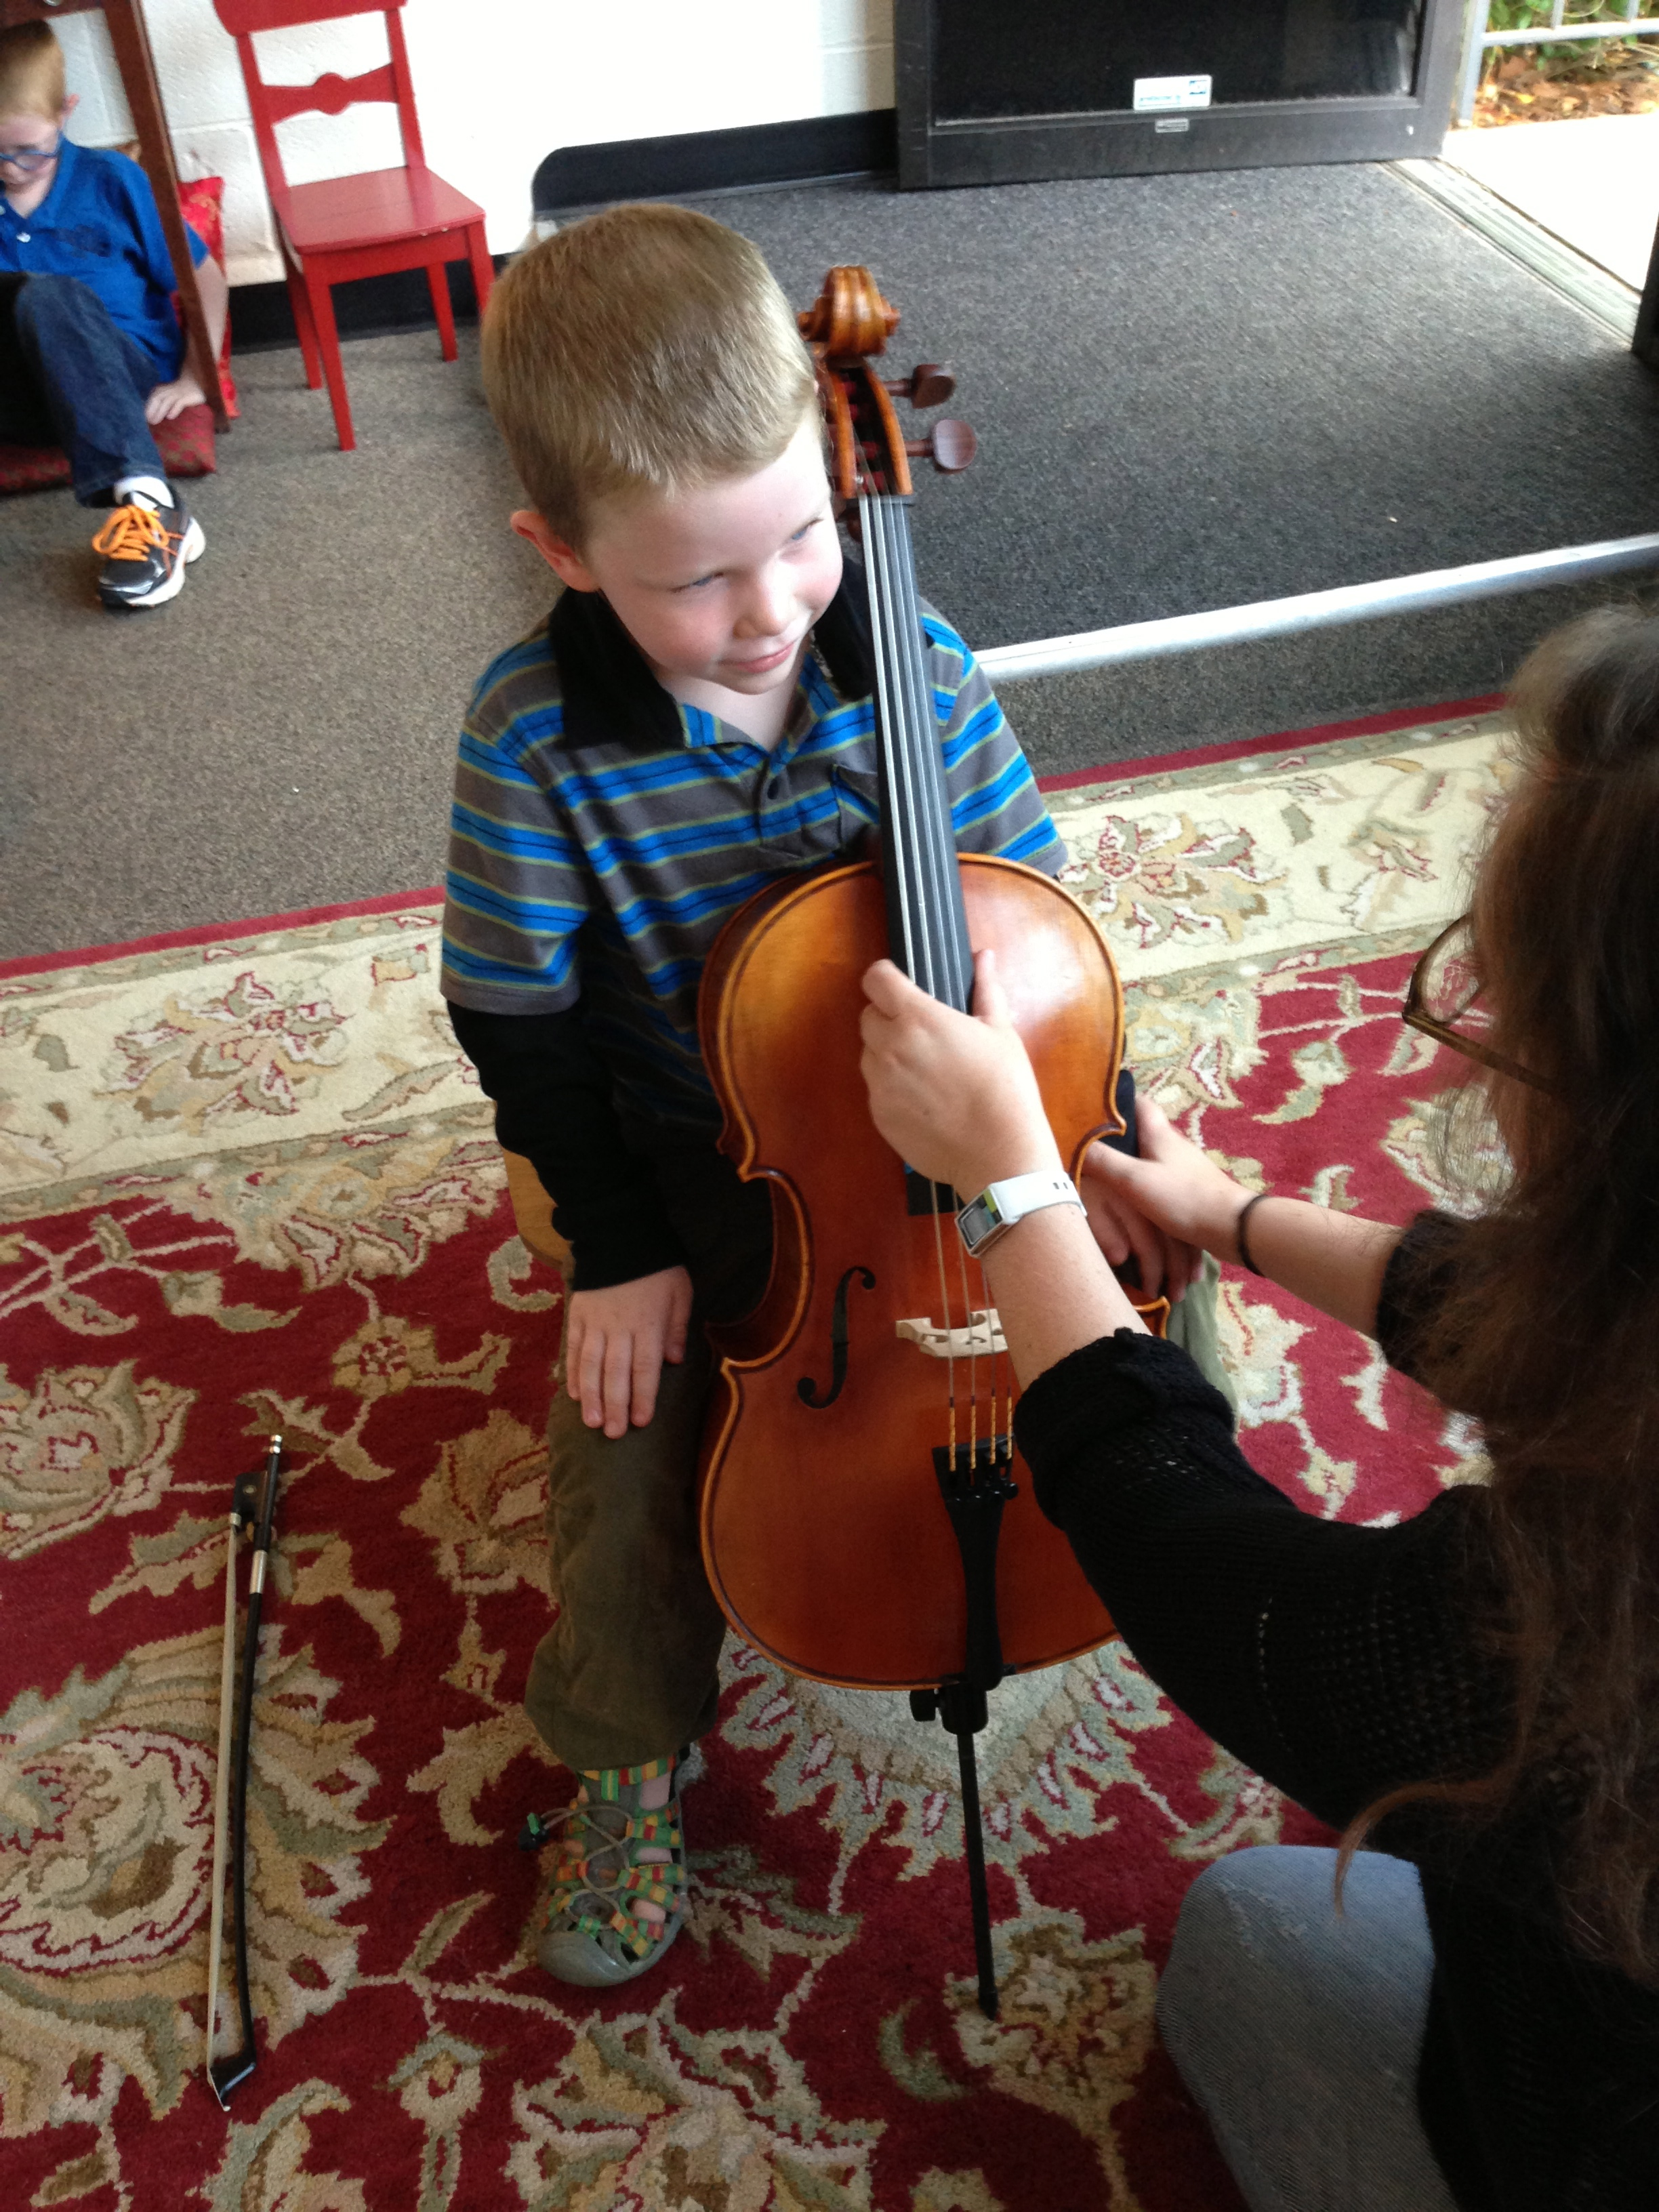 A Star Wars cello video inspired him to start playing.